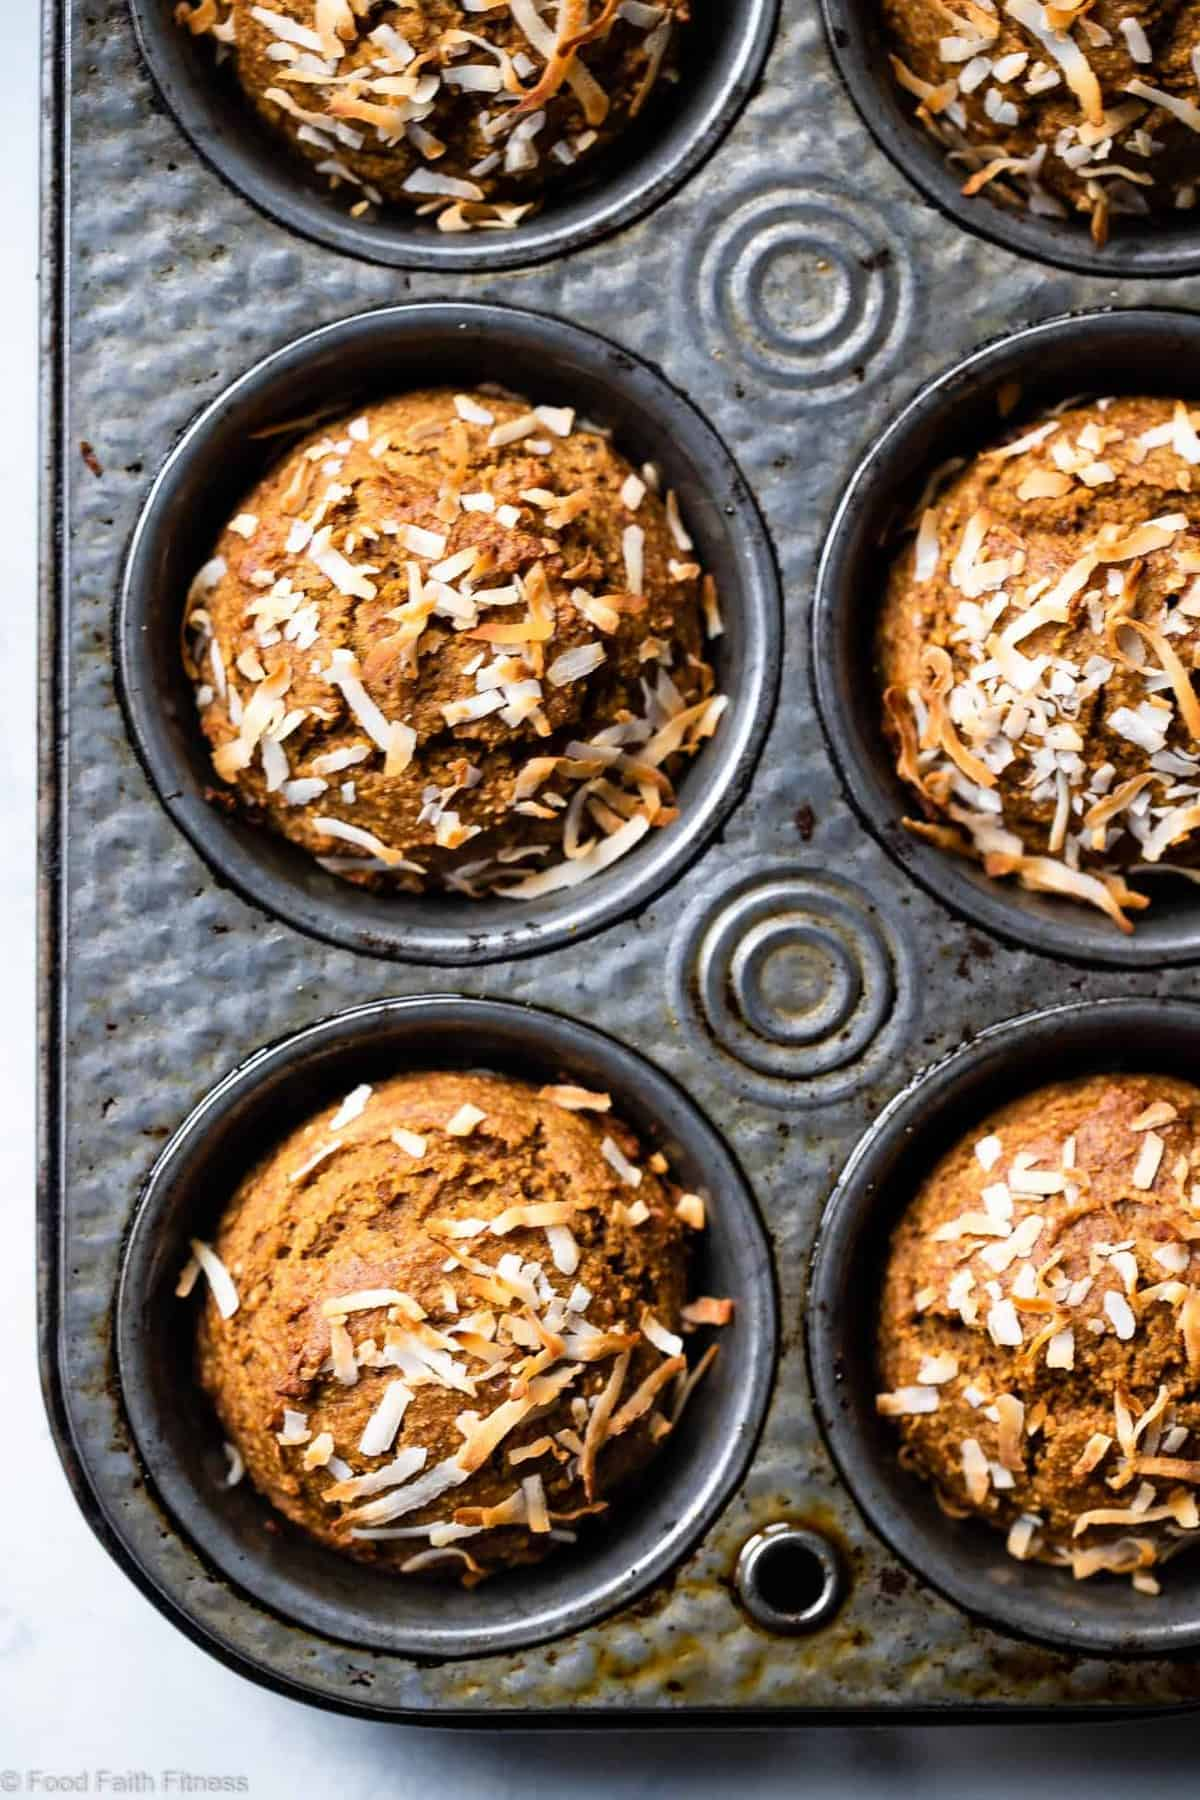 Sugar Free Gluten Free Oatmeal Carrot Muffins - These easy carrot muffins are naturally sweetened with dates and have a surprise, spicy-sweet kick! SO light and fluffy! Gluten free, healthy and tasty! | #Foodfaithfitness |